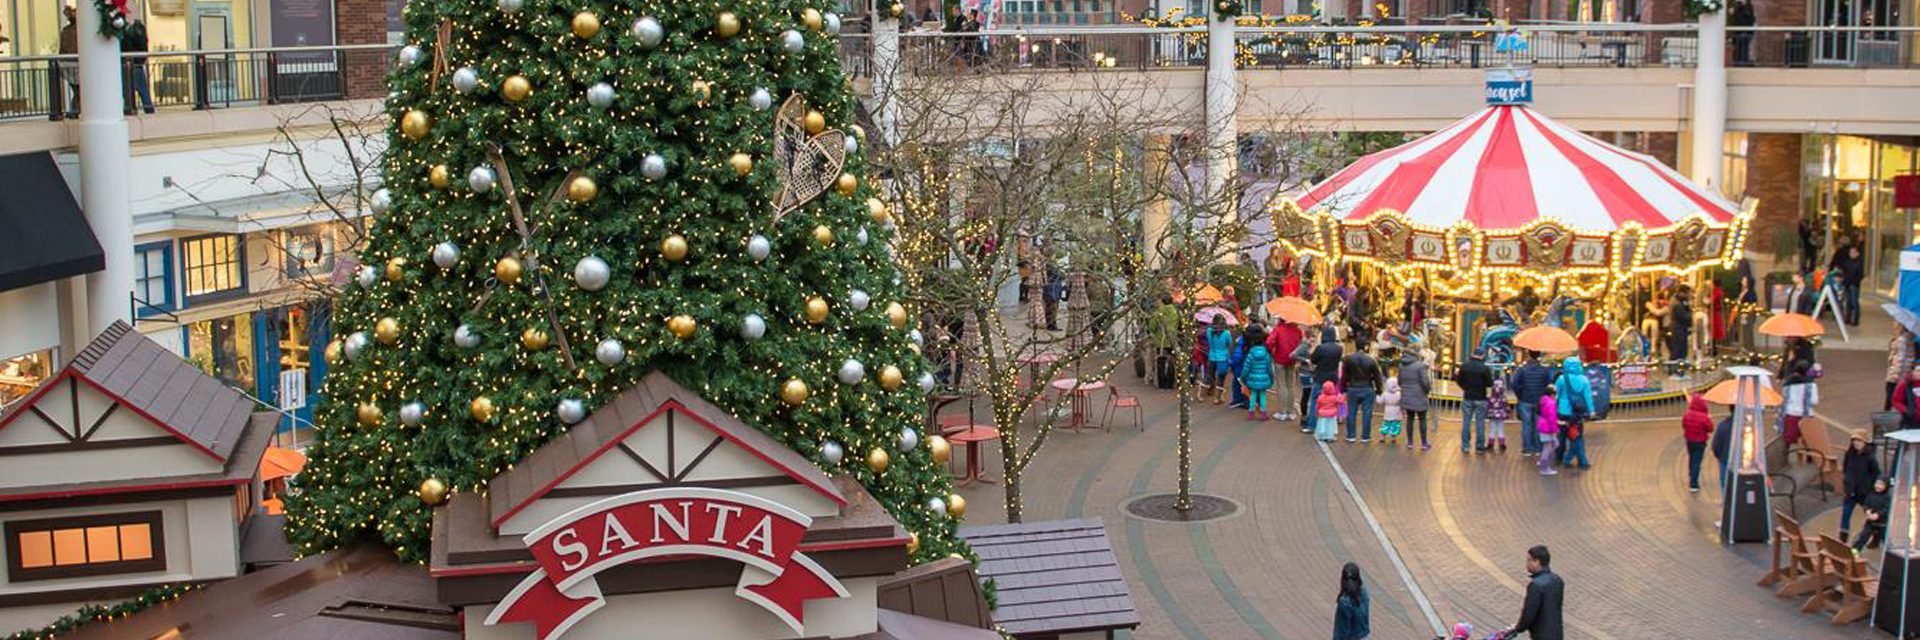 A large Christmas tree, Santa's Workshop and a carousel at an outdoor shopping center